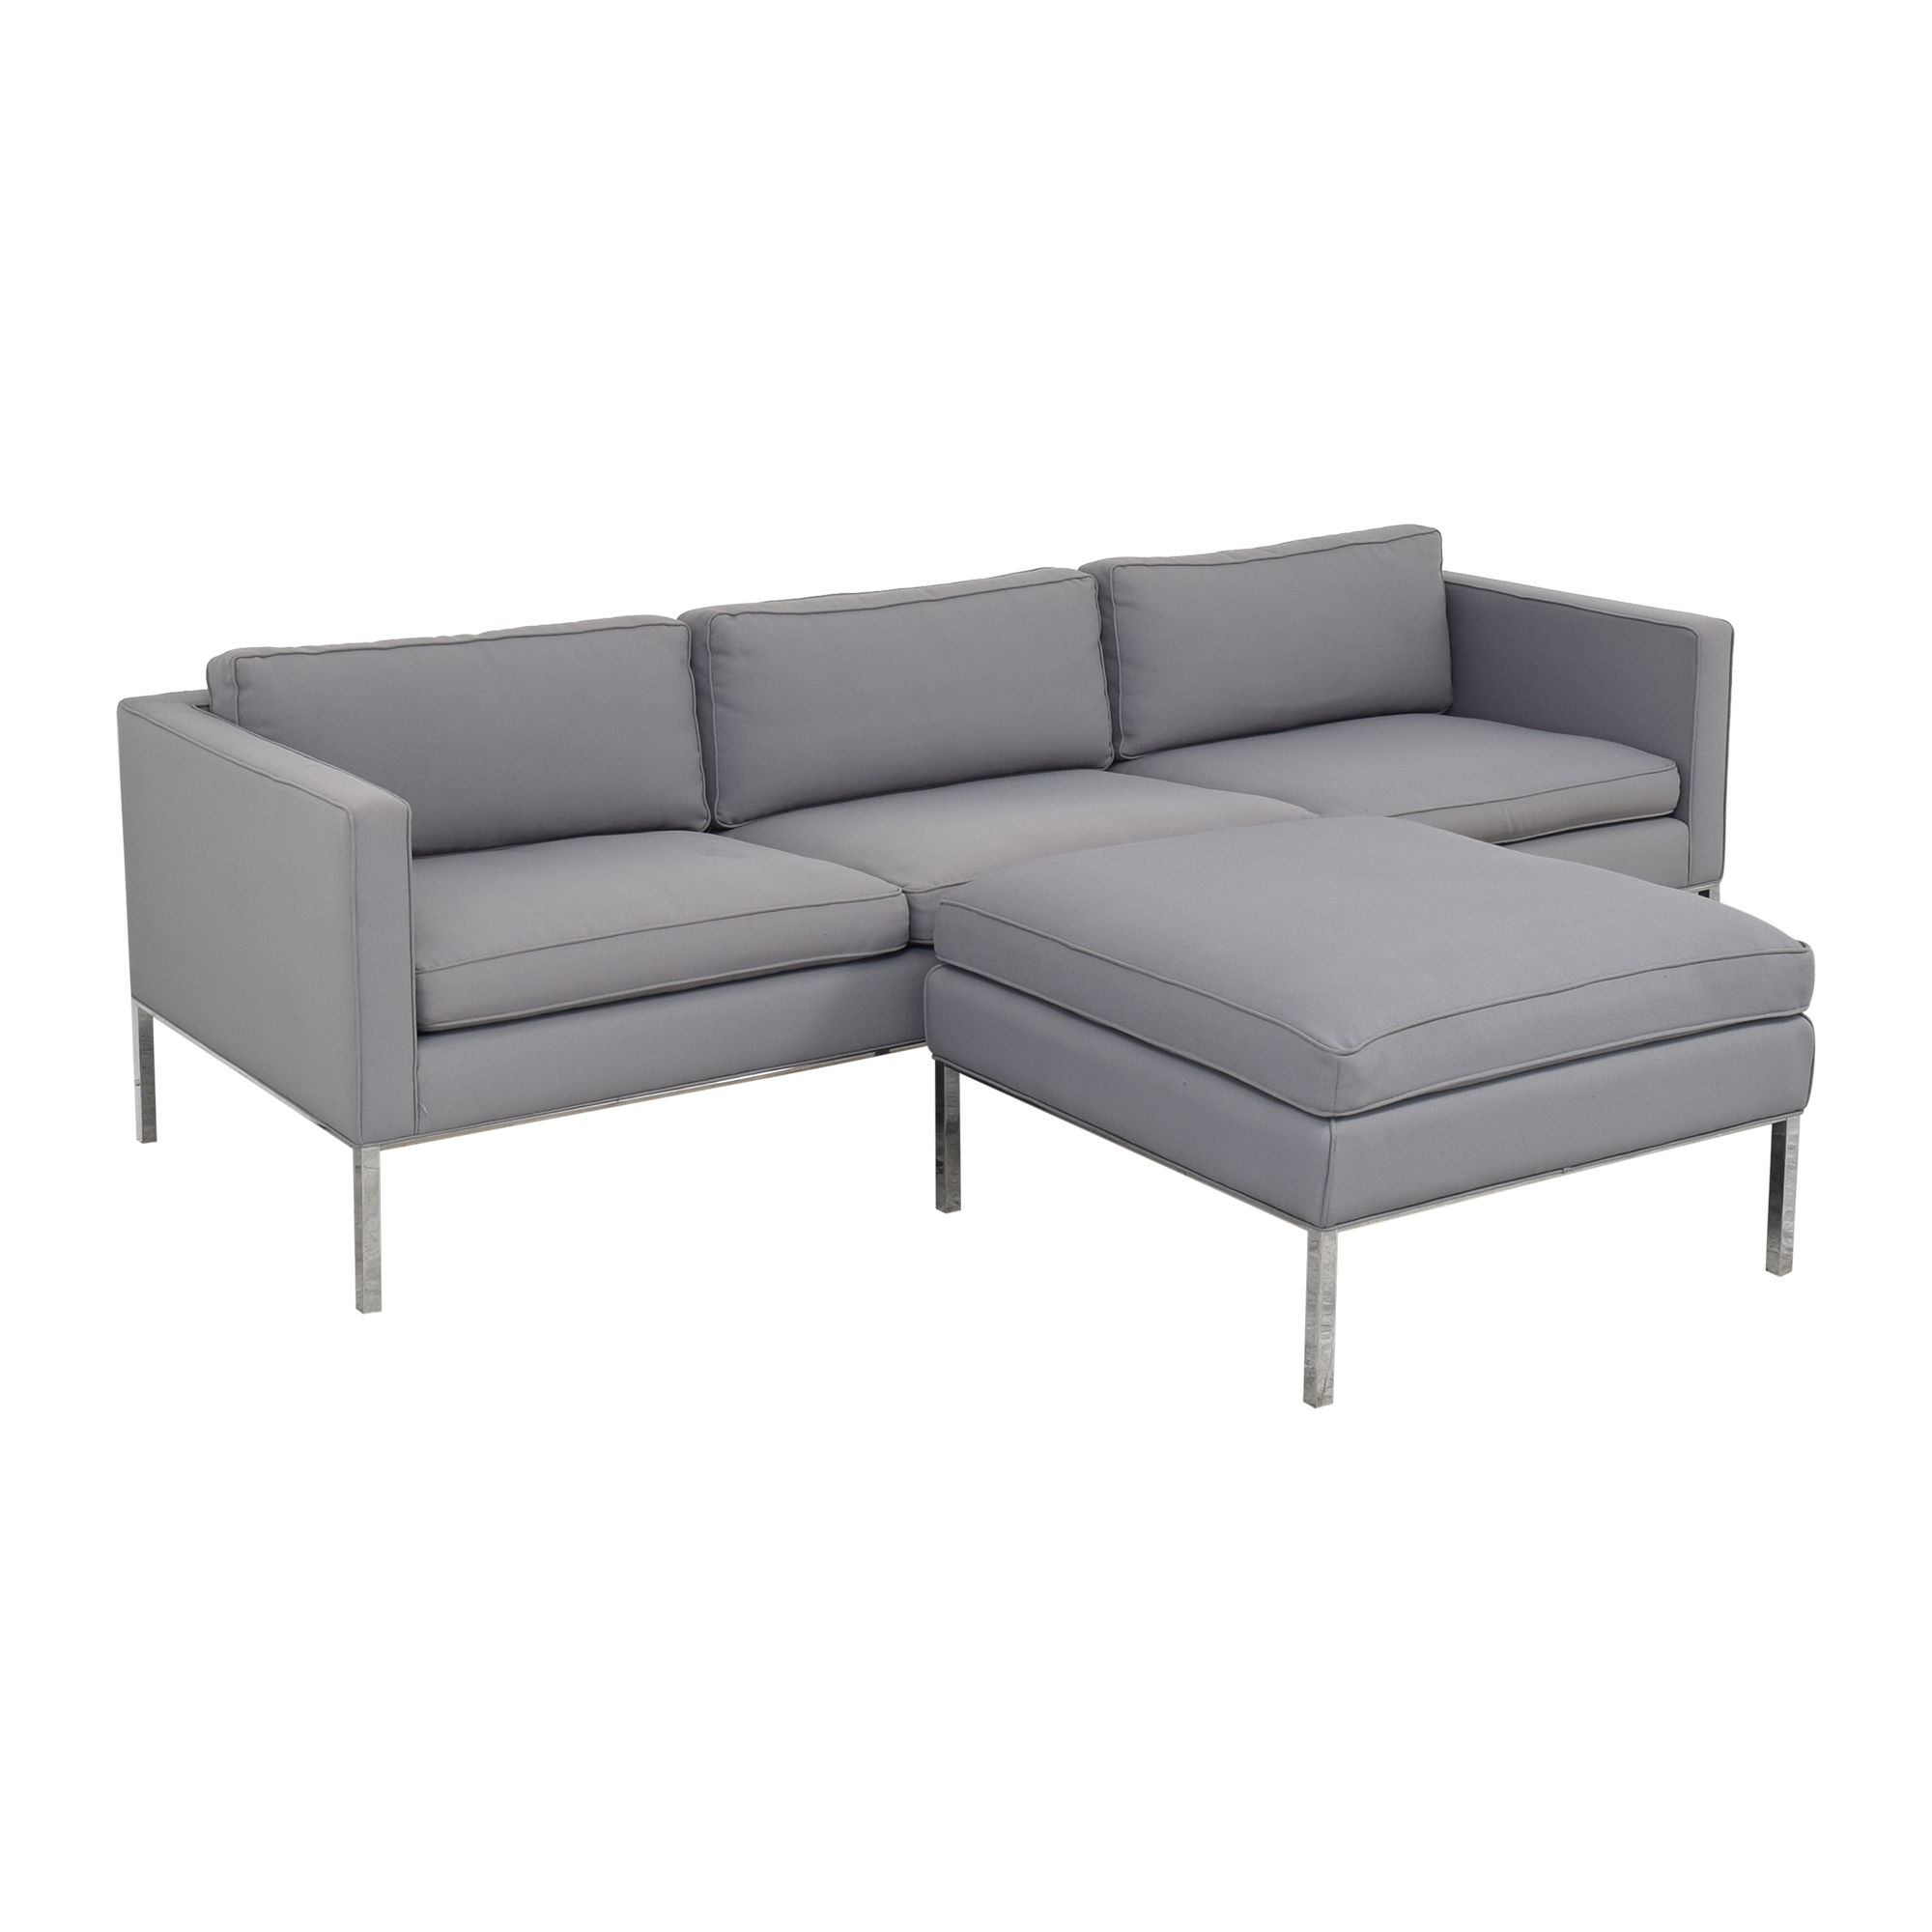 Artifort 905 3 Seater Sofa with 905 Ottoman / Classic Sofas